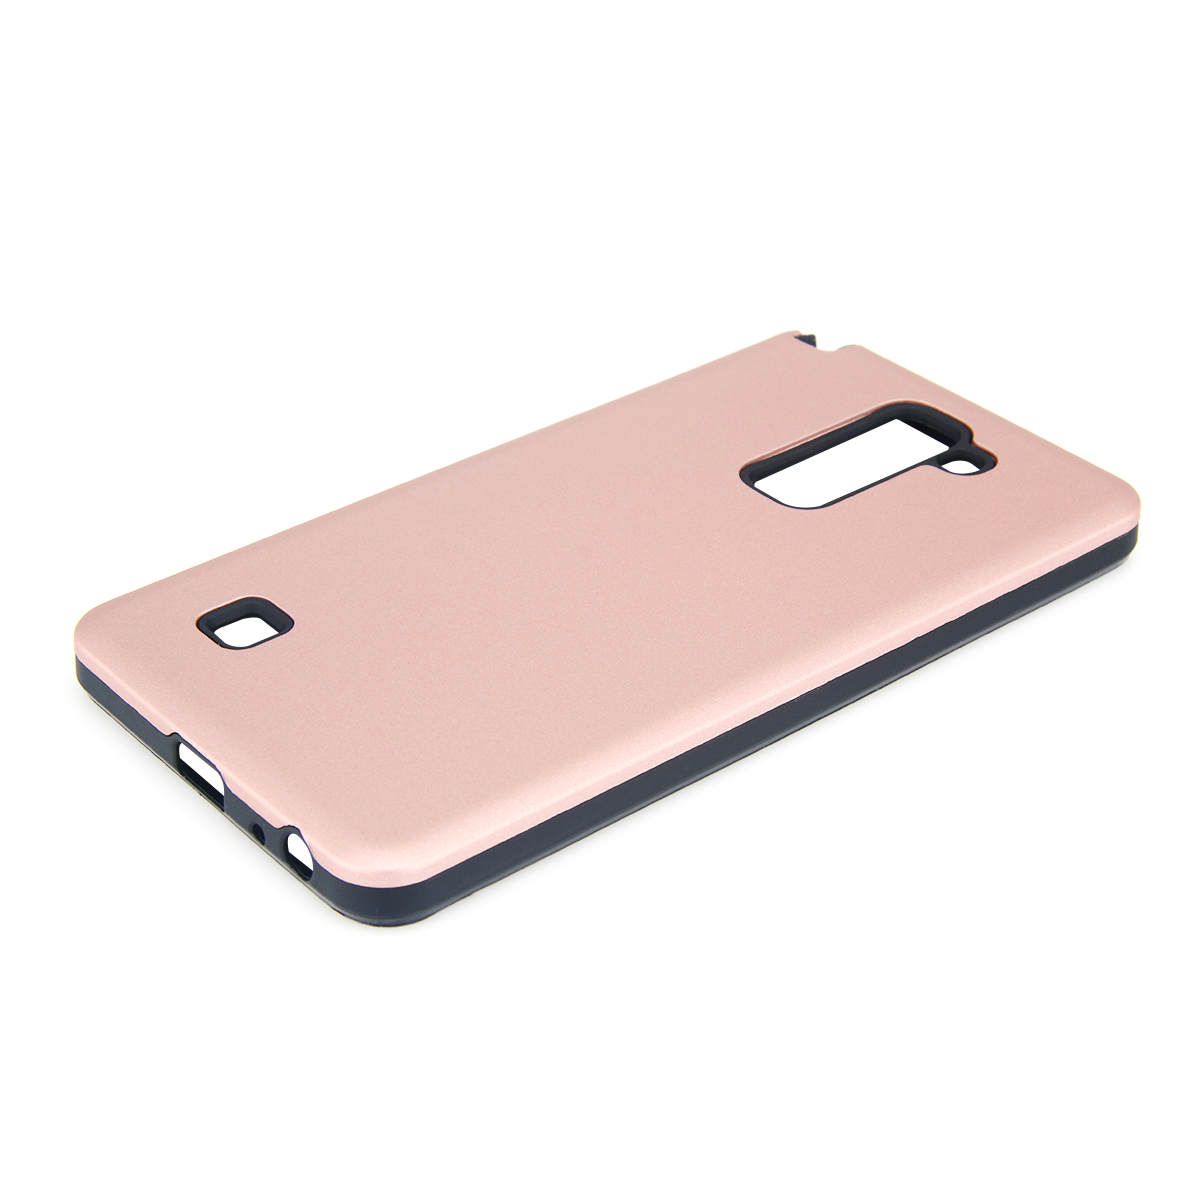 new concept 93272 0108e Moonmini Case for LG G Stylo 2 LS775 / LG Stylus 2 K520 Full-Body  Shockproof Combo Cover Case - Rose Gold - intl